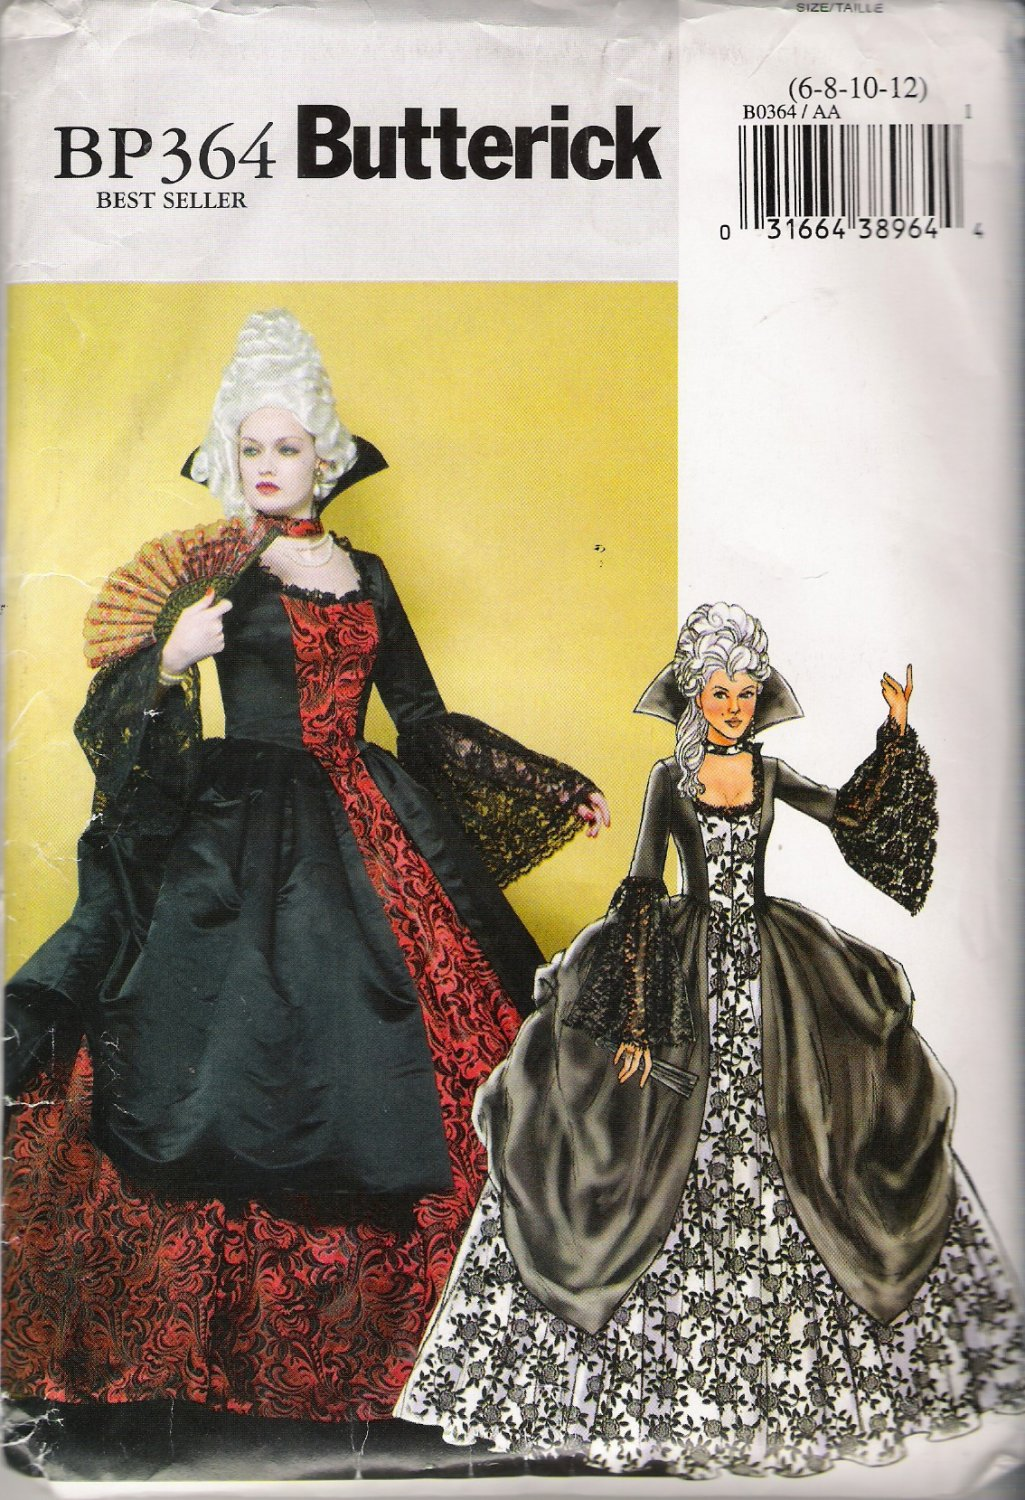 Misses' 18th Century Ball Gown Halloween Costume Sewing Pattern Size 6-12 Butterick BP364 UNCUT